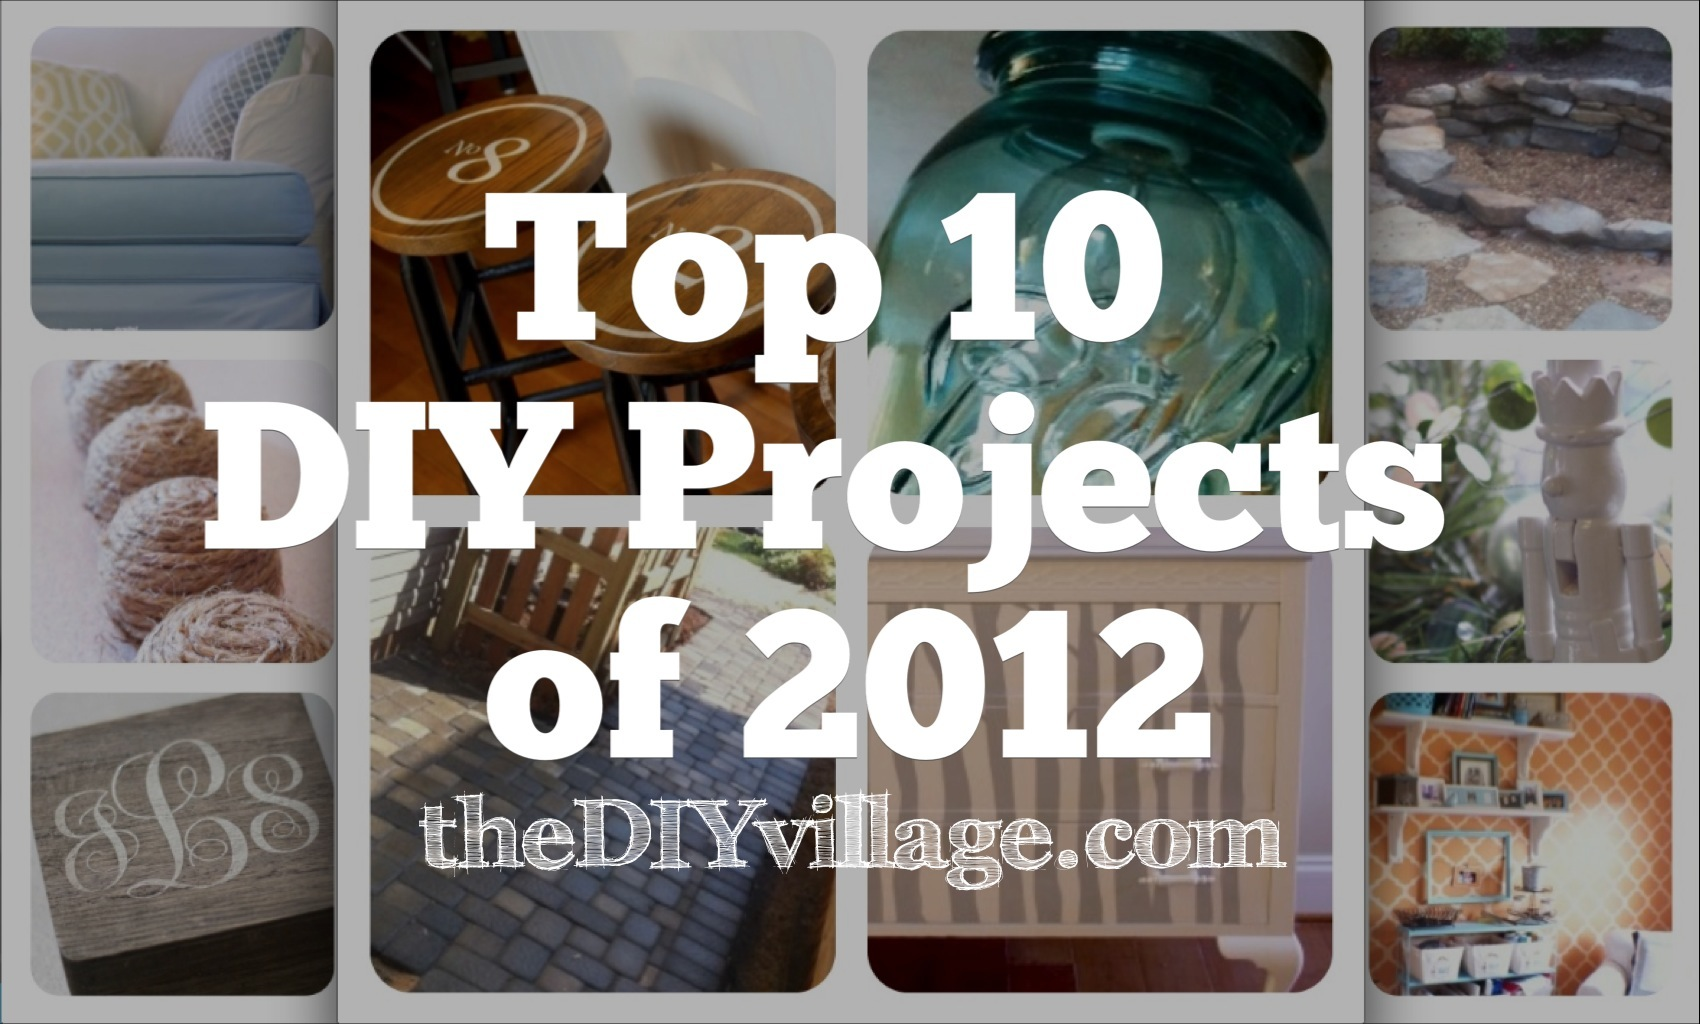 Top 10 Do It Yourself Projects of 2012 - the DIY village